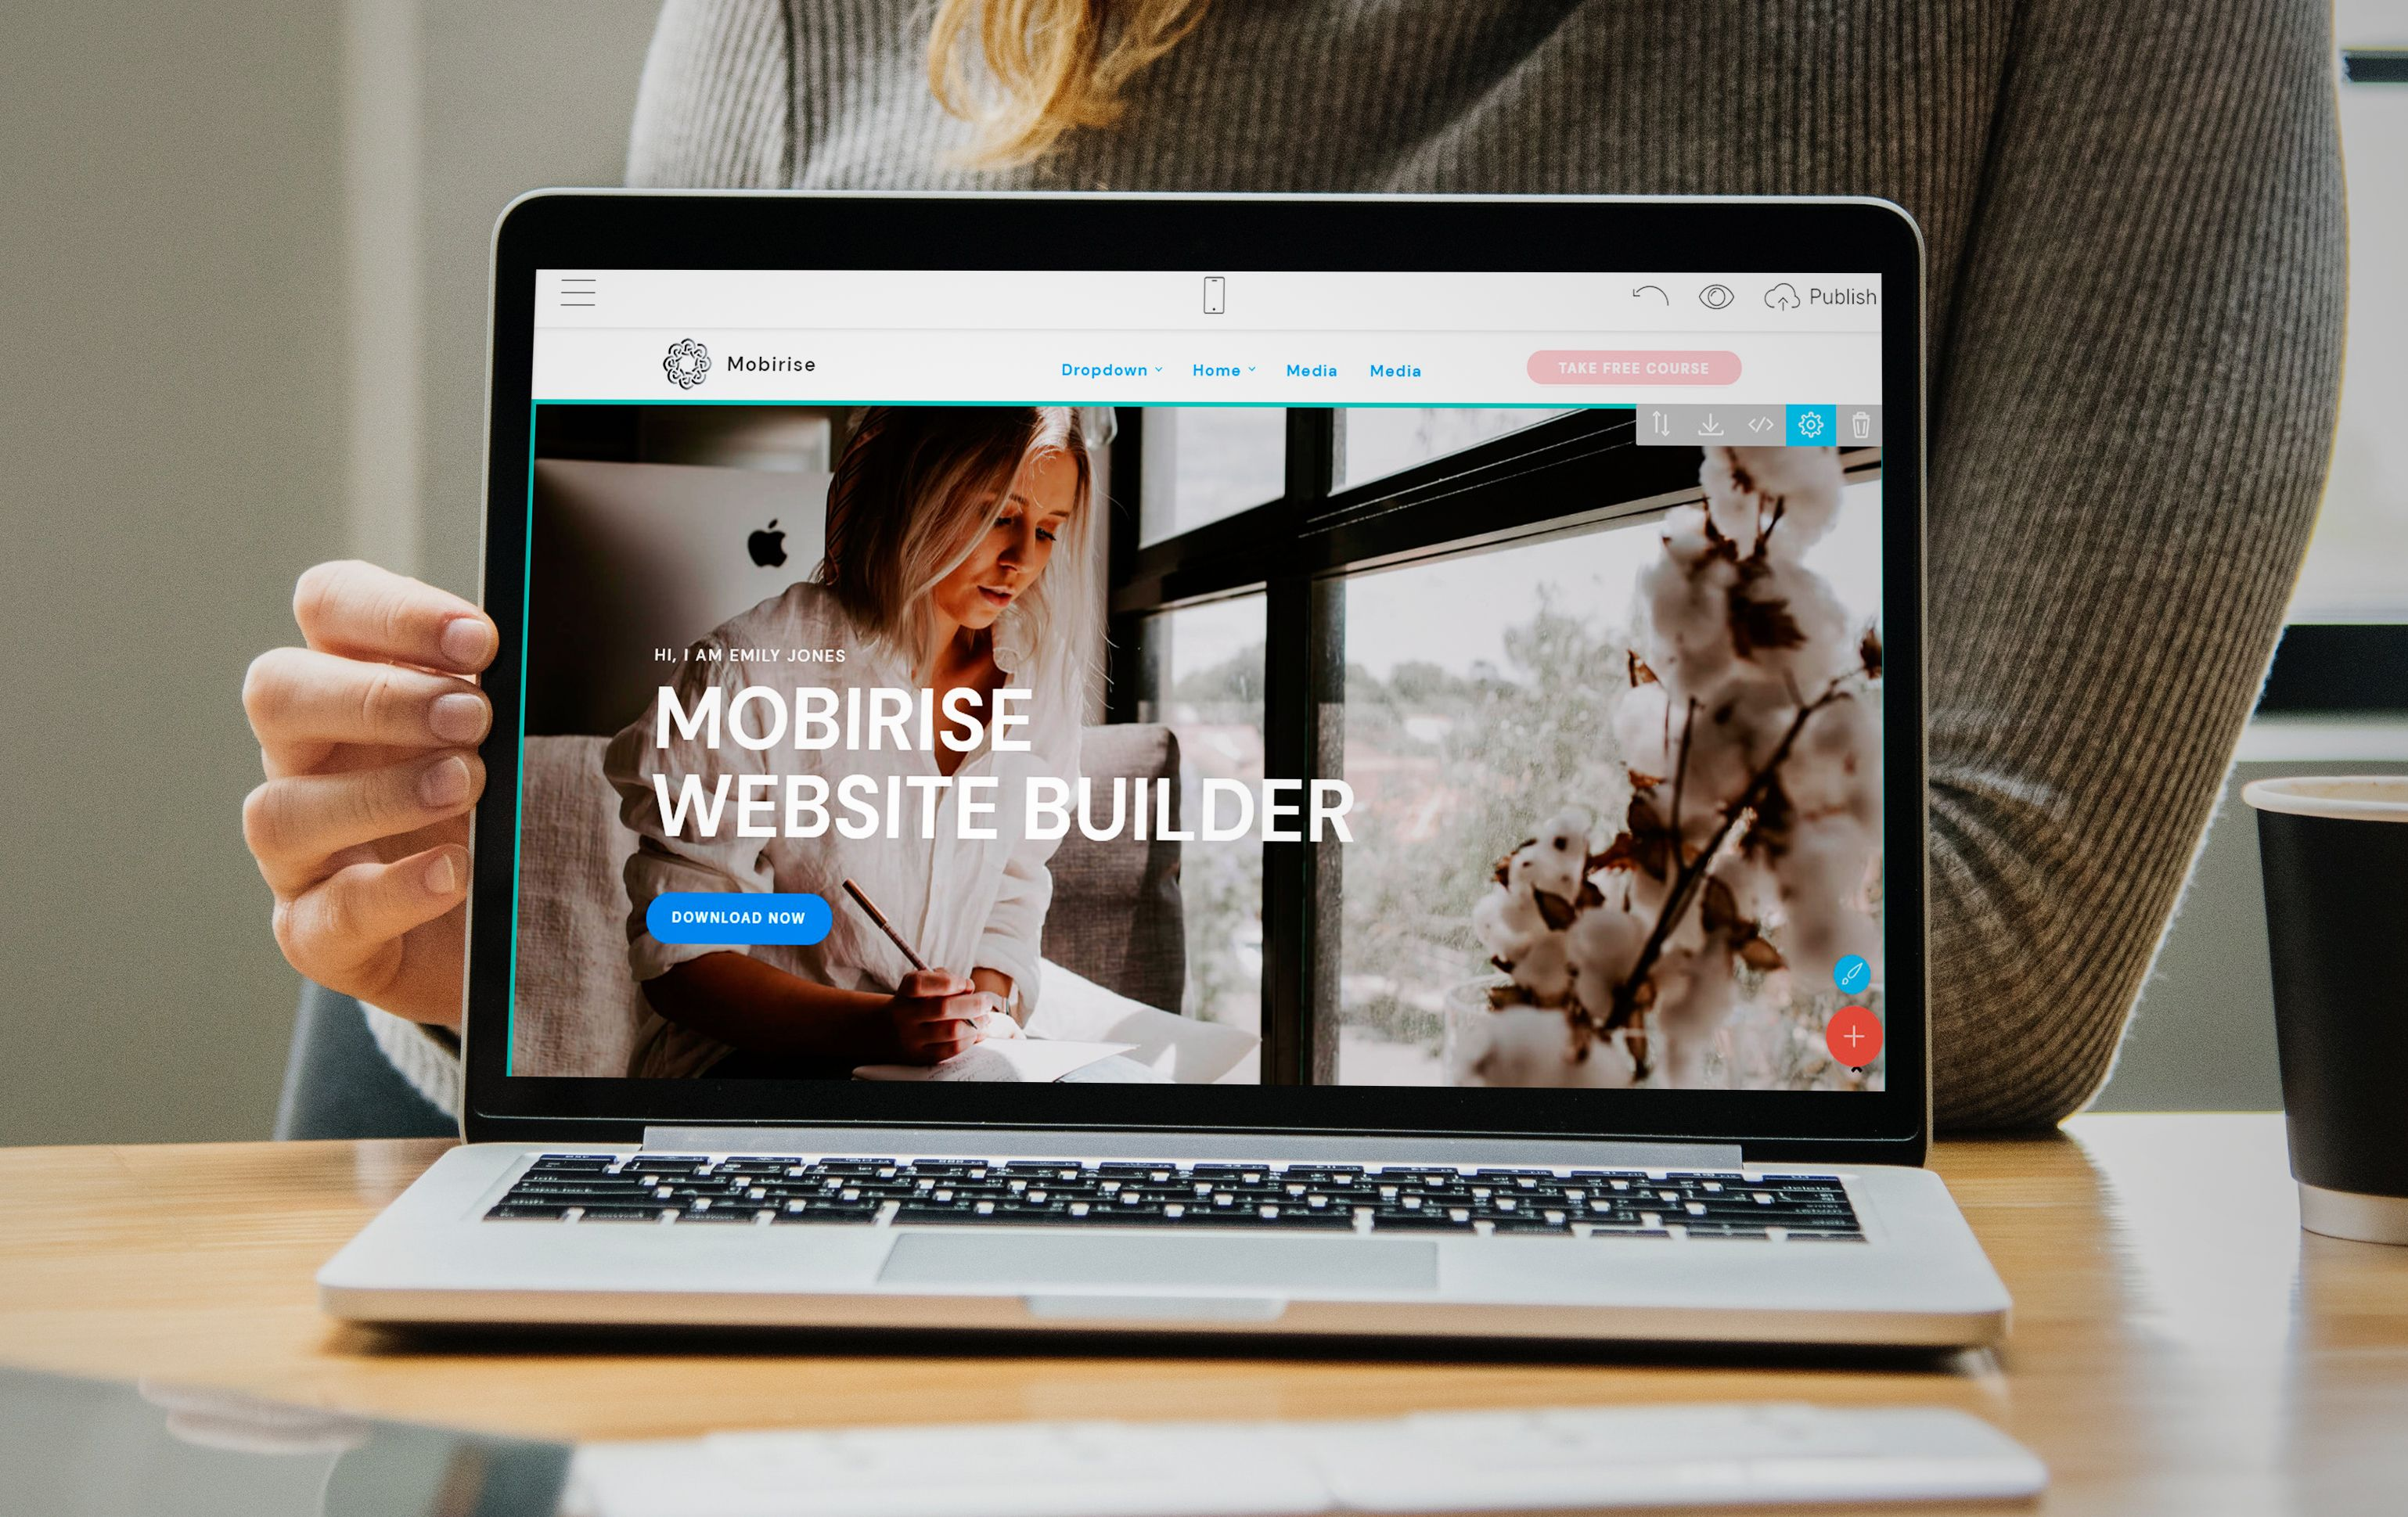 Enjoy The Creativity Freedom With Versatile And Amazing Mobirise Themes And Templates Download Mobirise Now To Create A Website For Your Business For Free